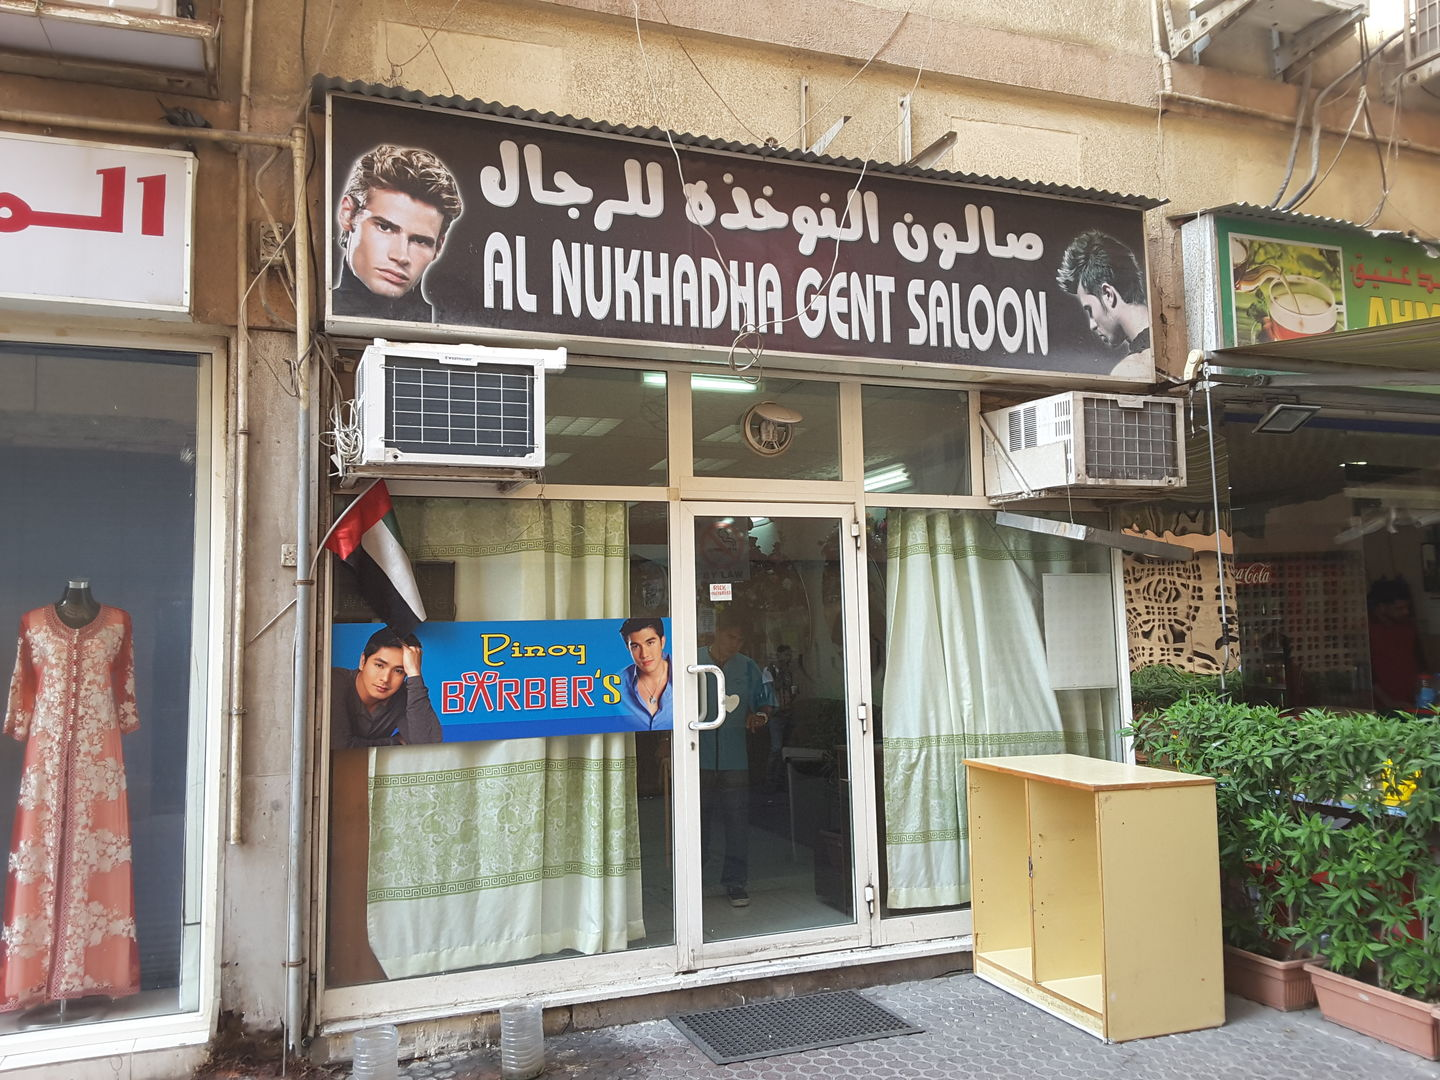 HiDubai-business-al-nukhadha-gent-saloon-beauty-wellness-health-beauty-salons-al-hudaiba-dubai-2